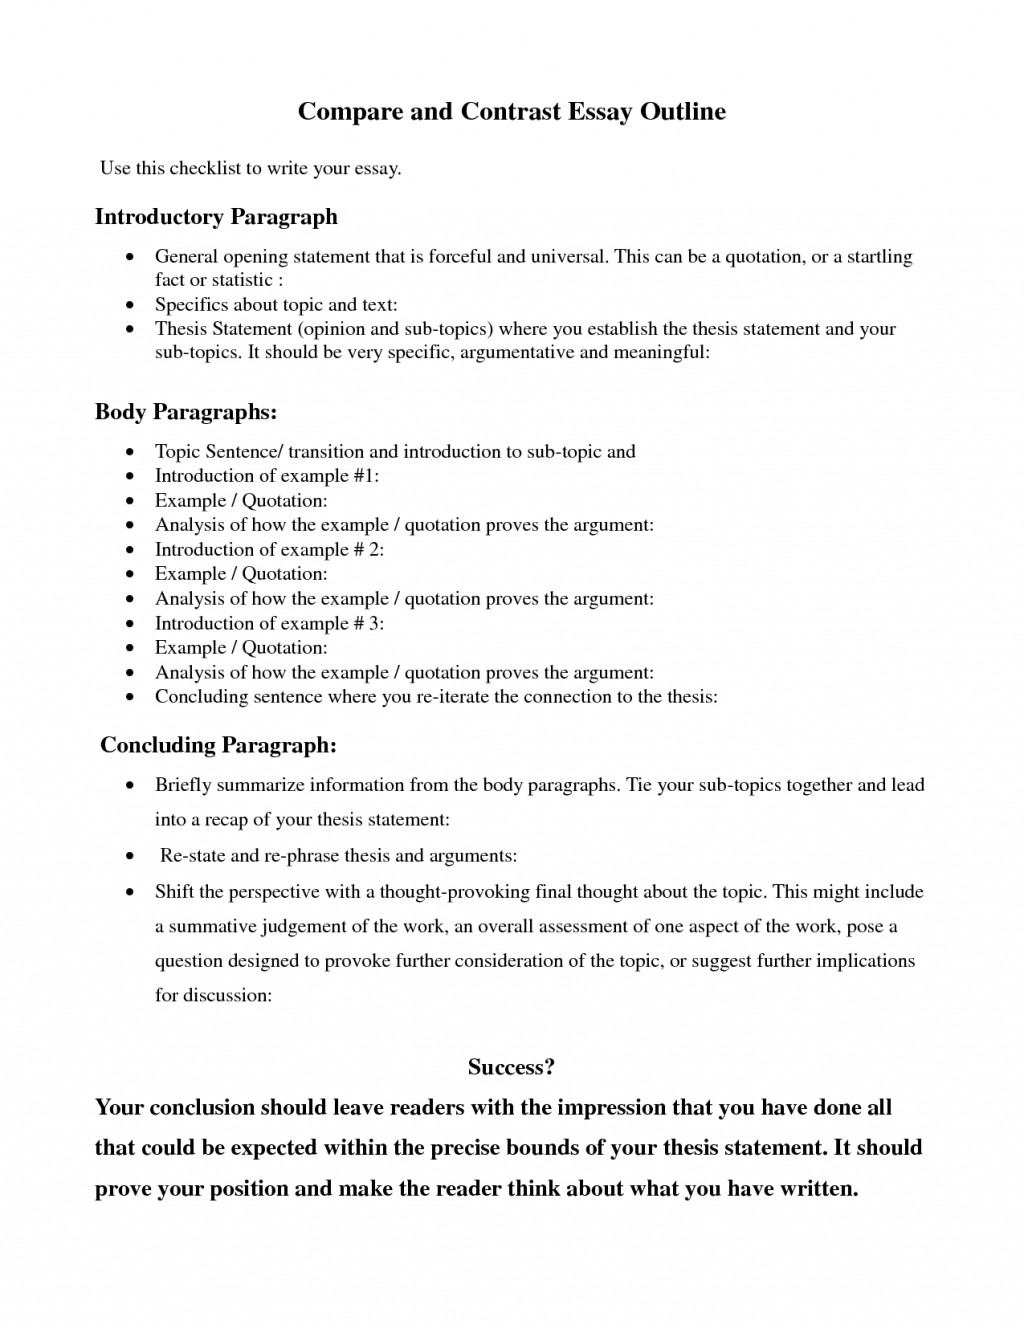 013 Thesis Essay Stupendous Antithesis Synthesis Structure Driven Template Paper Example Outline Large